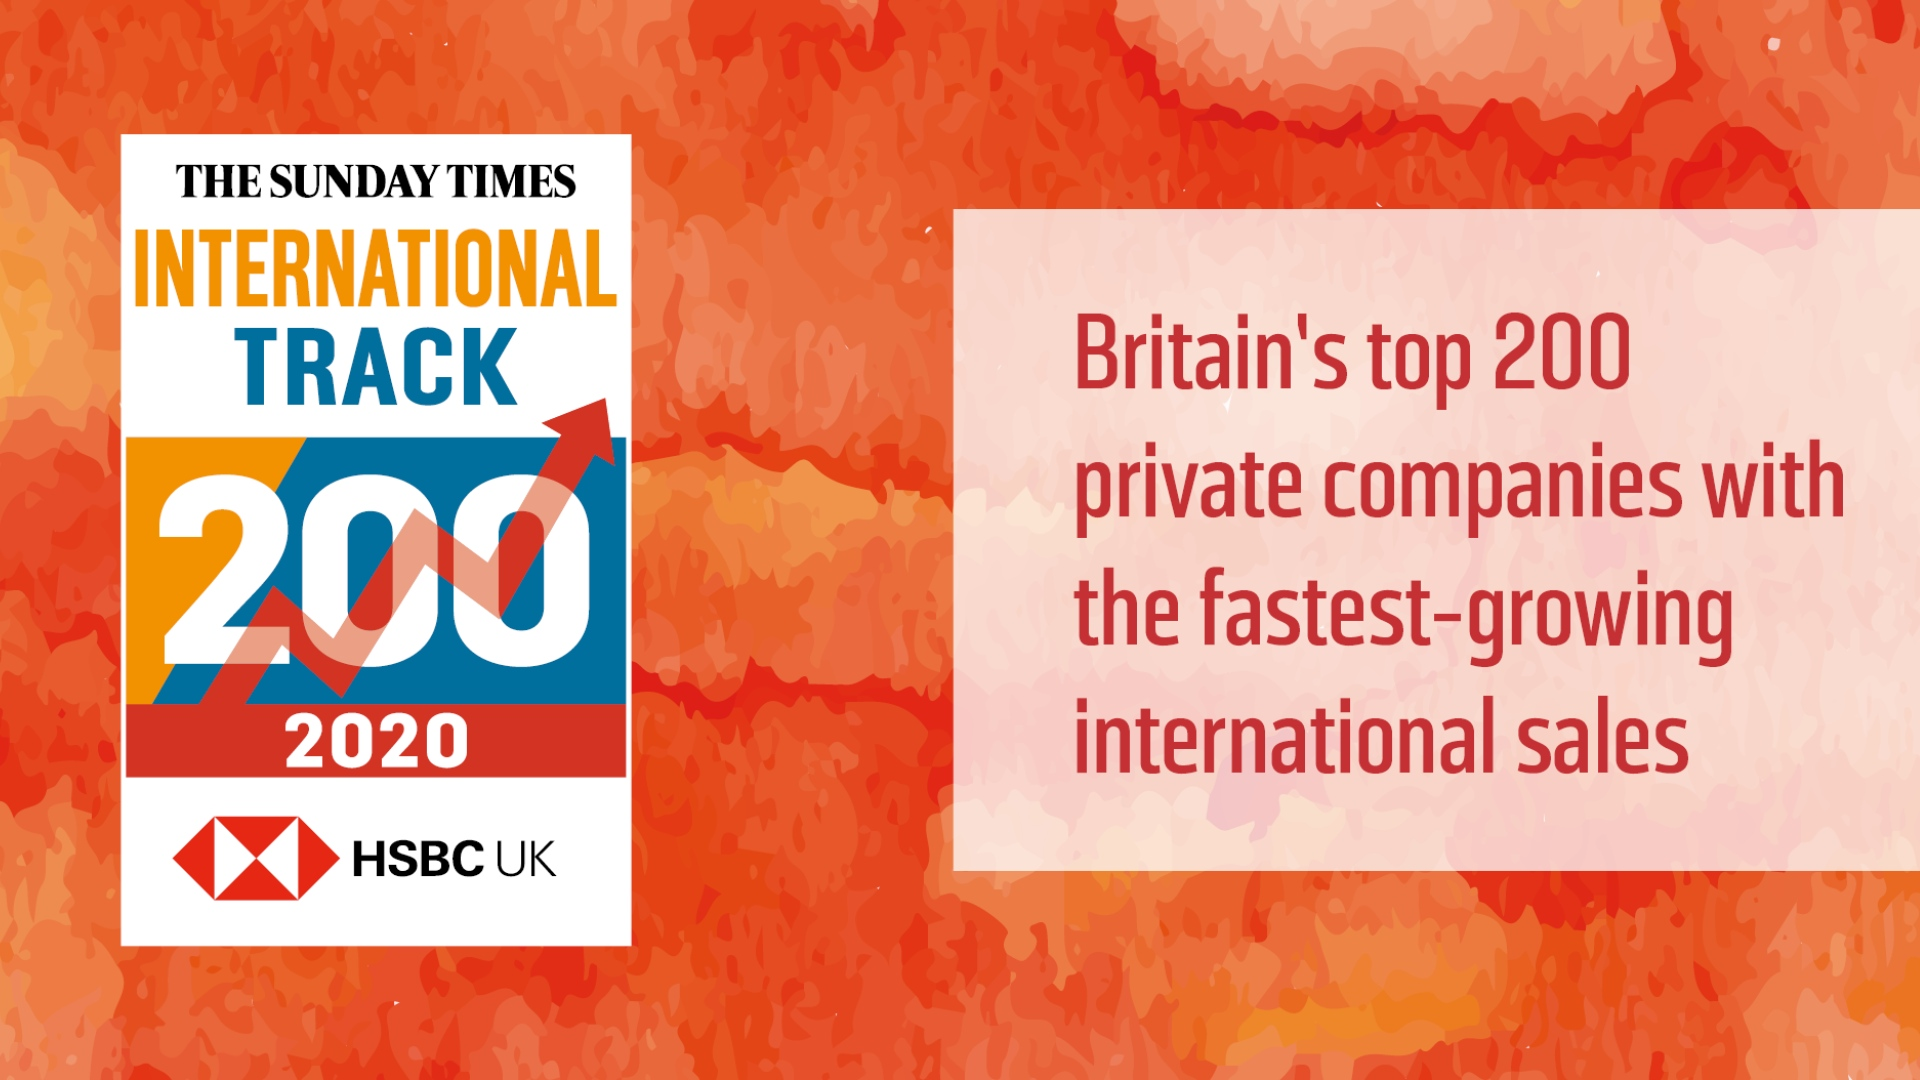 Hampshire businesses top the Sunday Times HSBC International Track 200 league table